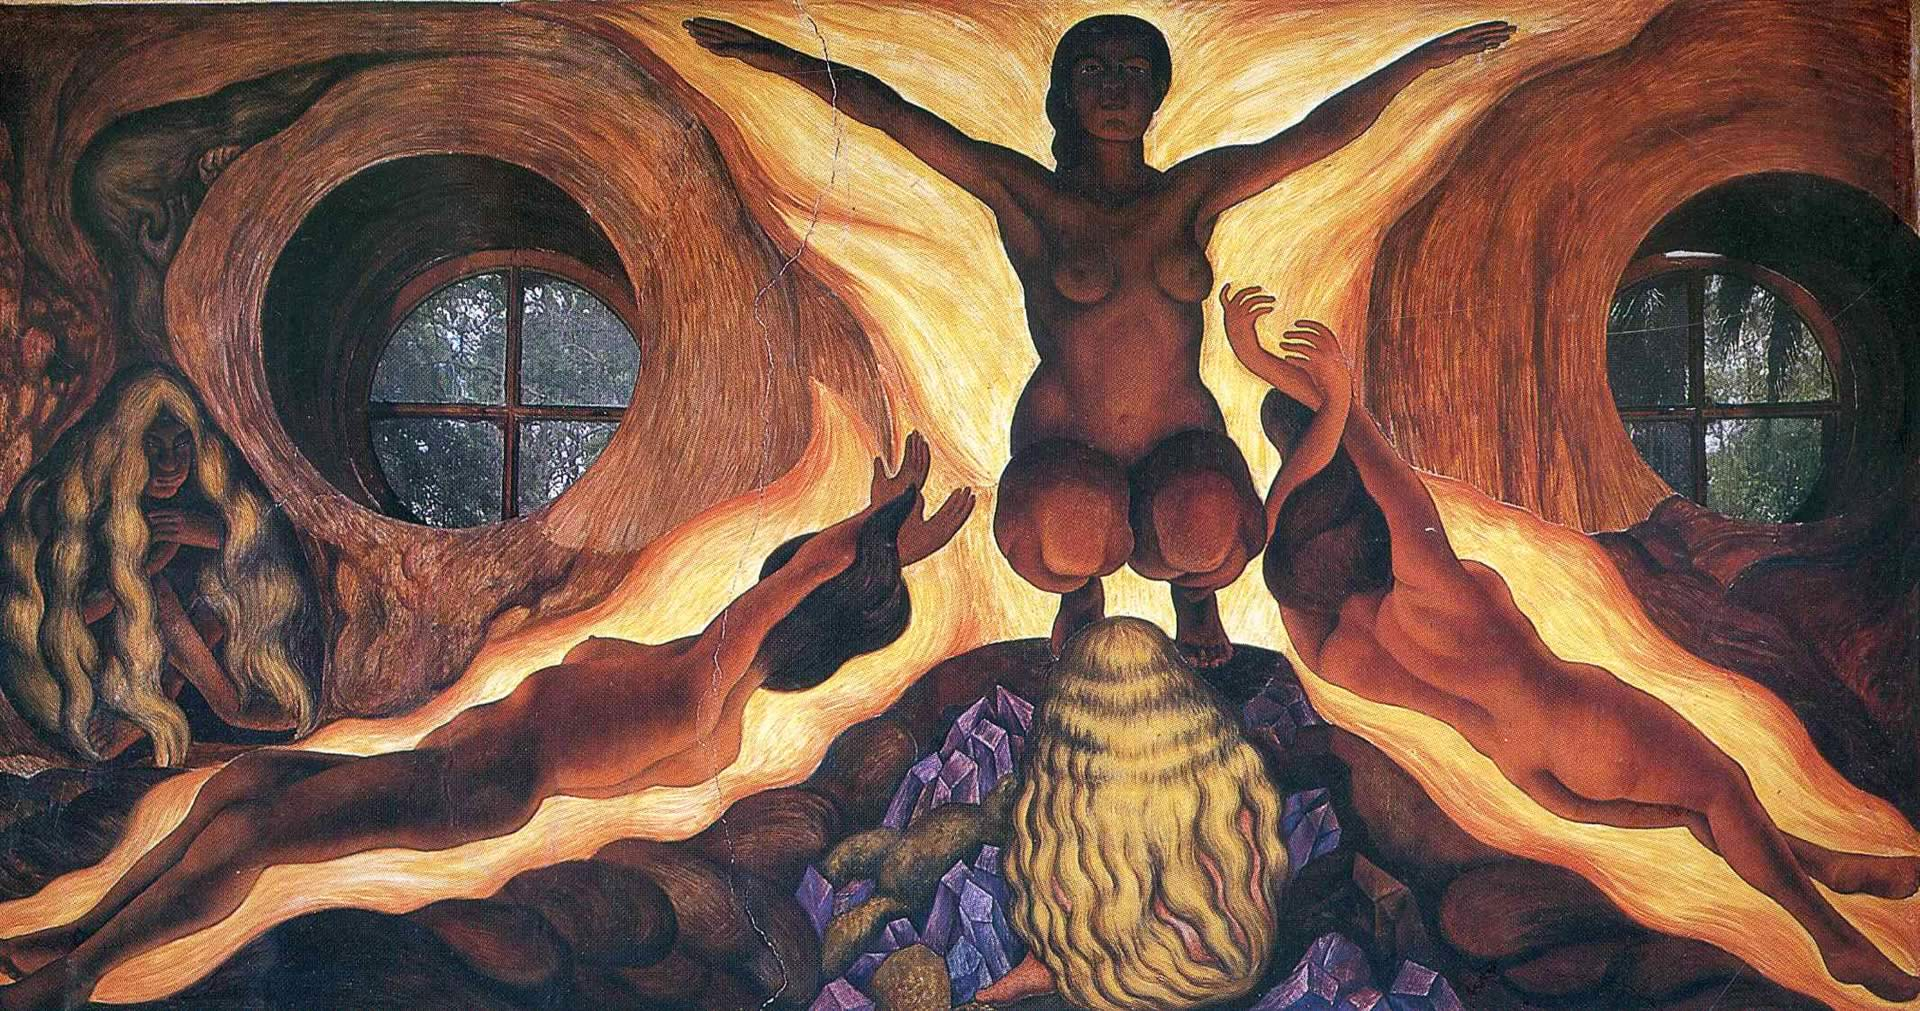 Diego rivera wallpapers wallpaper cave for Arte mural mexicano